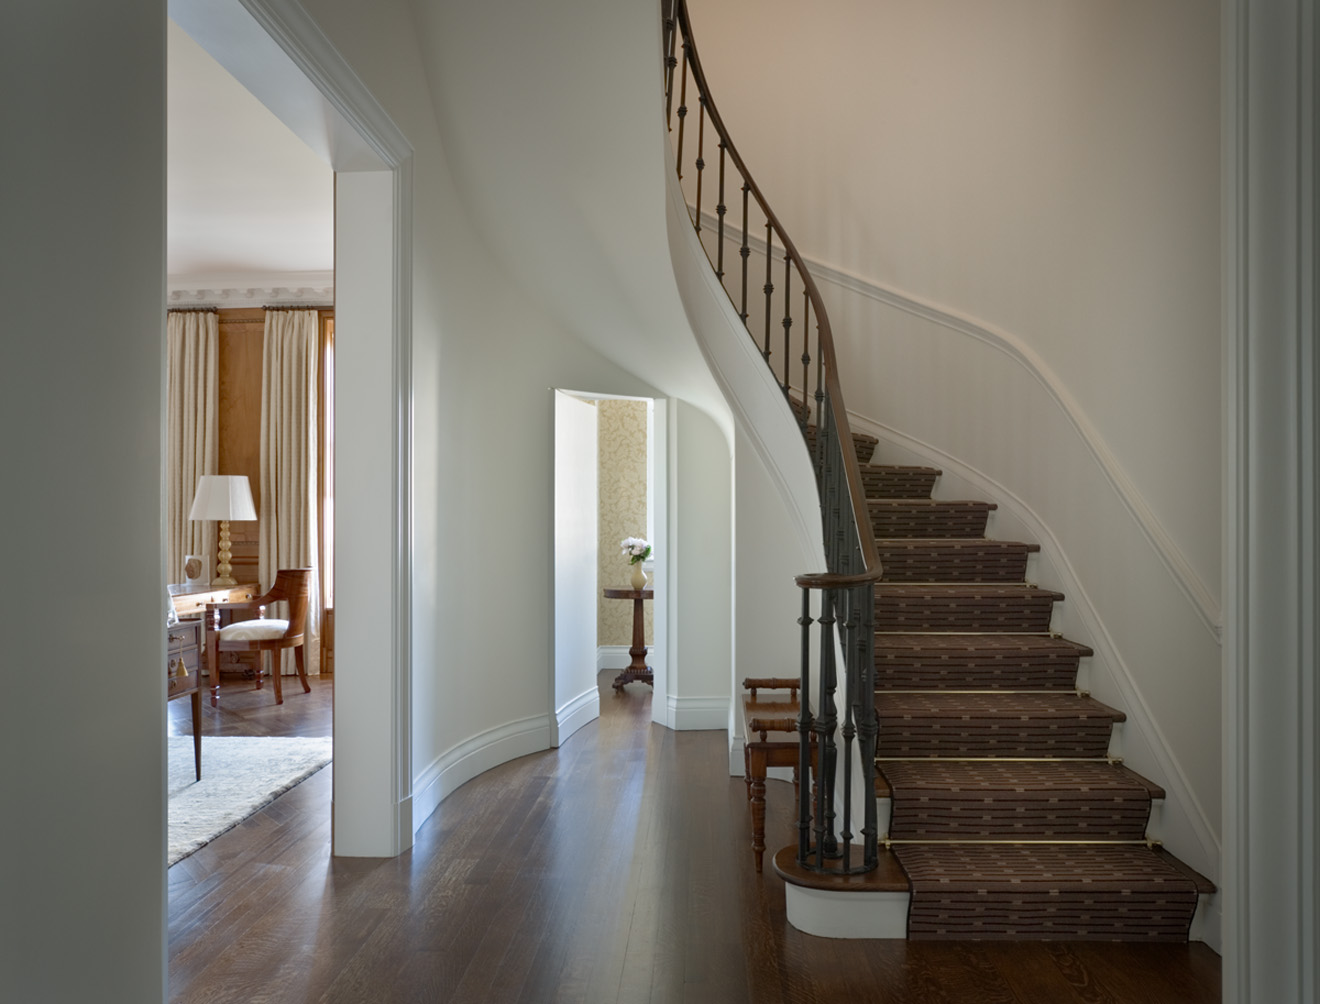 Stair hall. © Gomez Associates